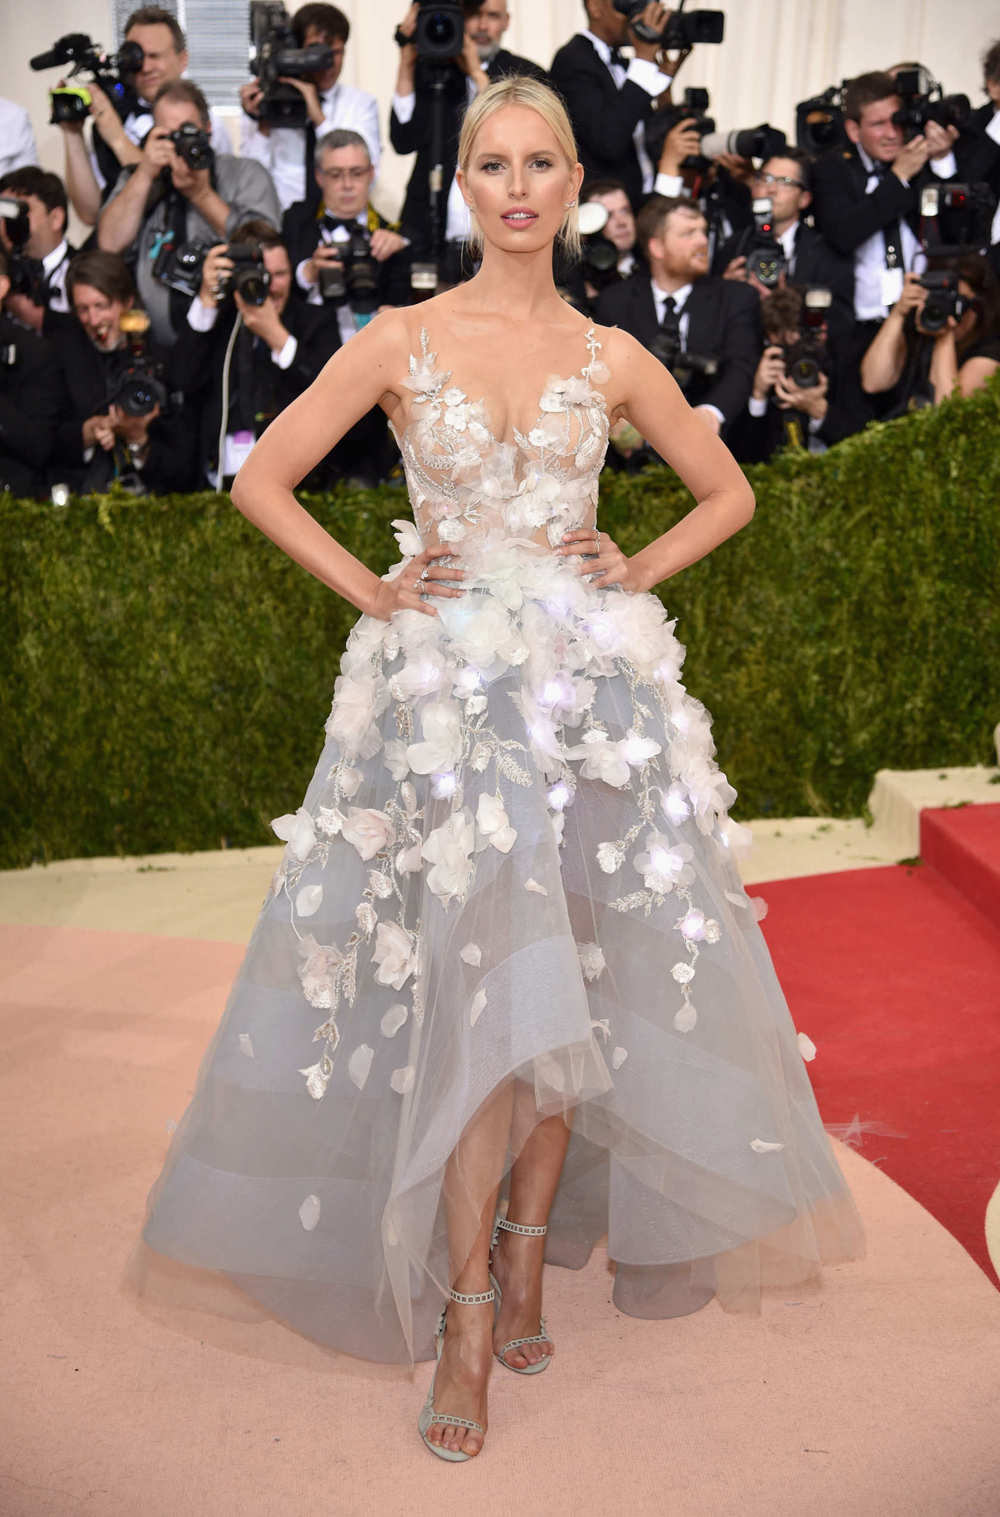 Karolina Kurkova in Marchesa at the Met Gala 2016.